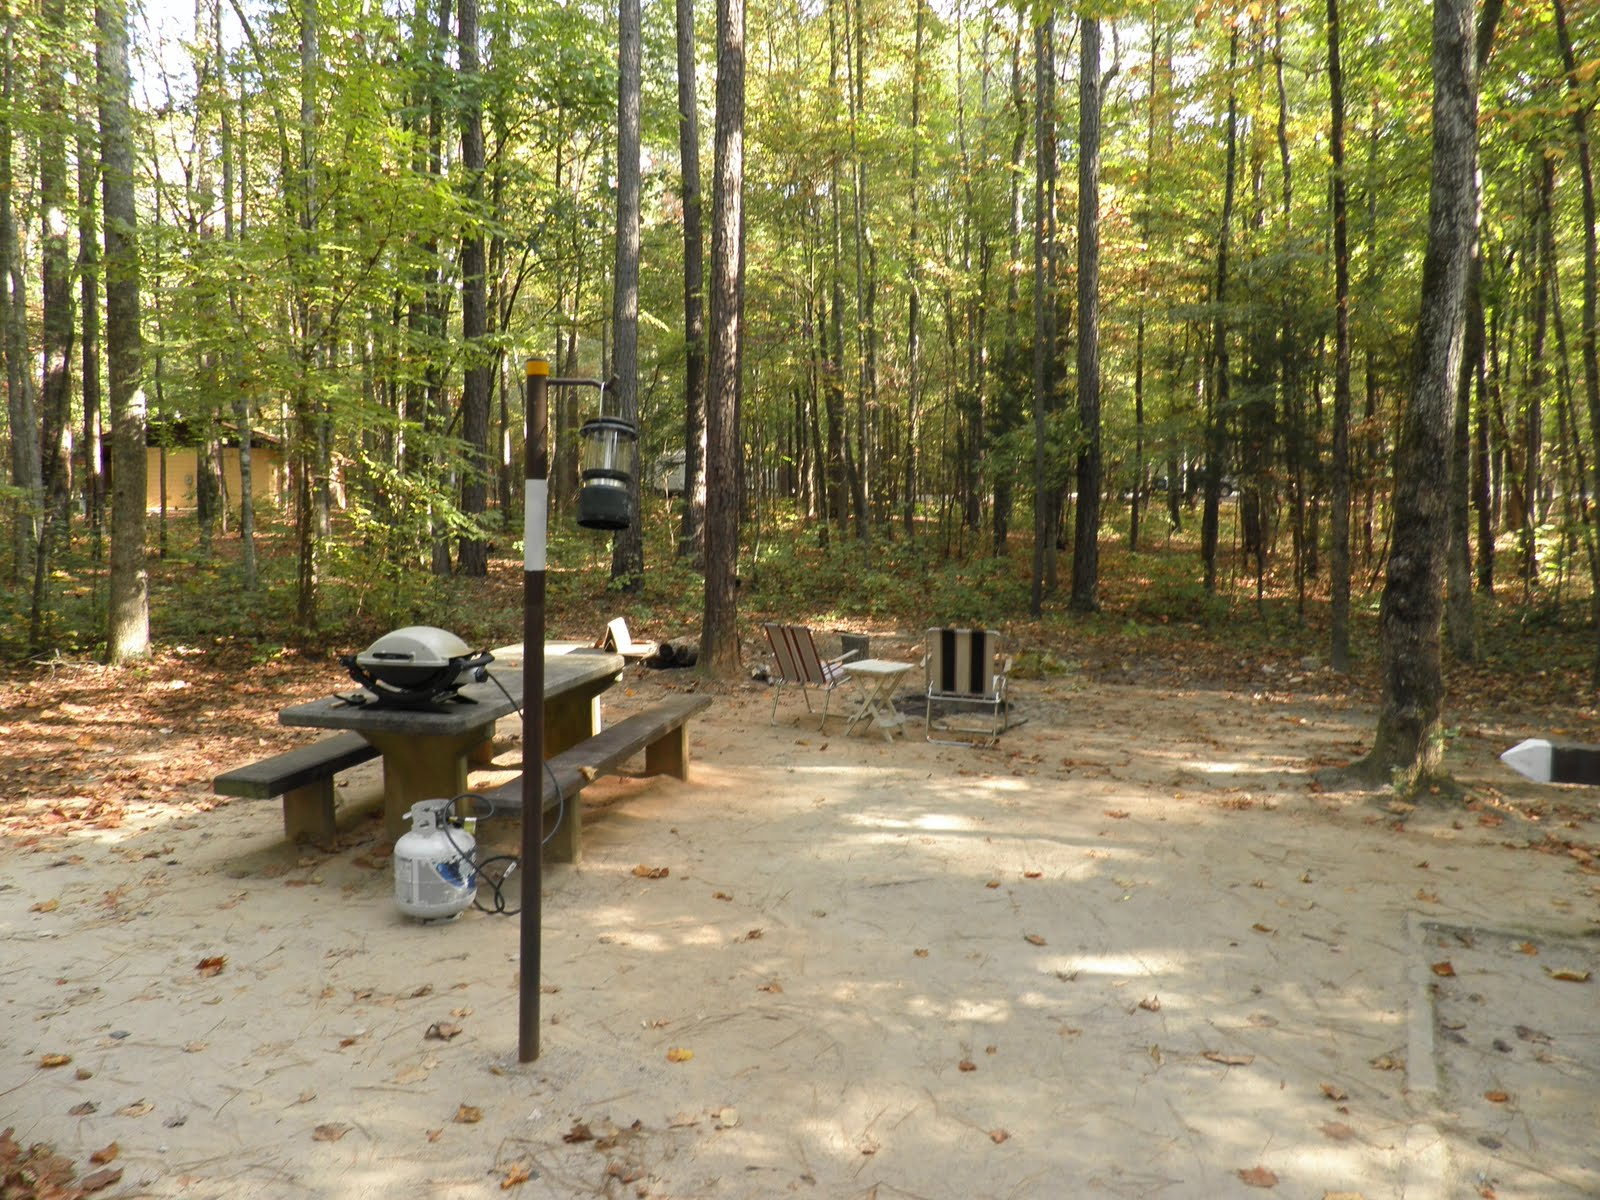 Where in the usa rv abbeville south carolina october for Sumter national forest cabins